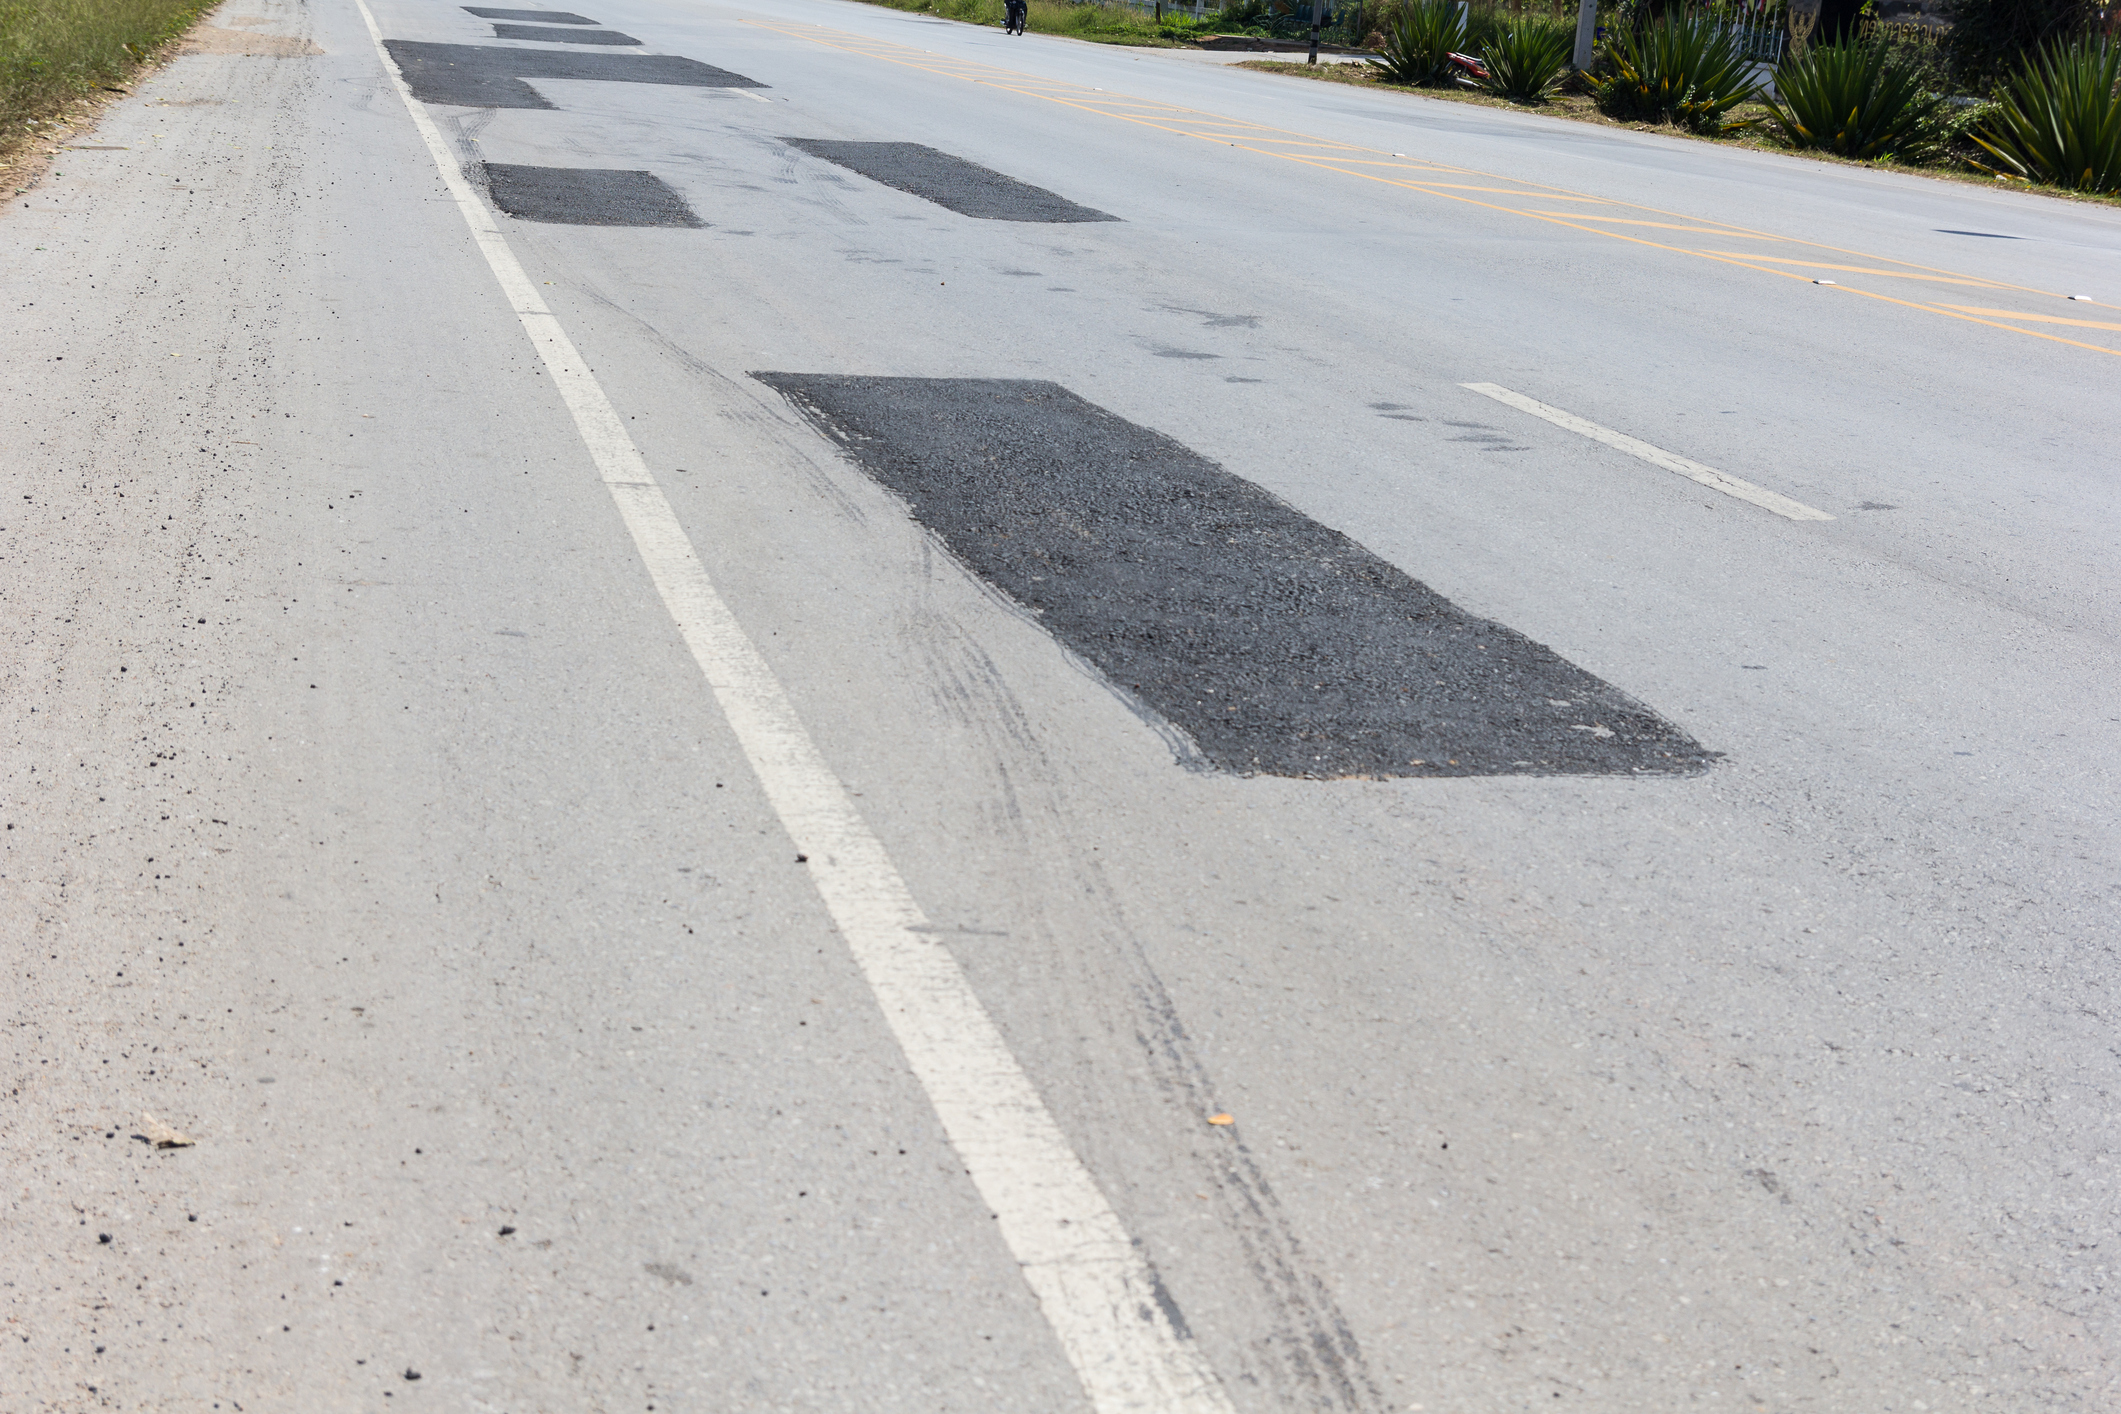 Asphalt Repair/Patching - Repairs done right the 1st time will all but eliminate problems in the future. Apex Asphalt offers complete removal, base excavation, fabric placement (if required) and full depth asphalt patching.